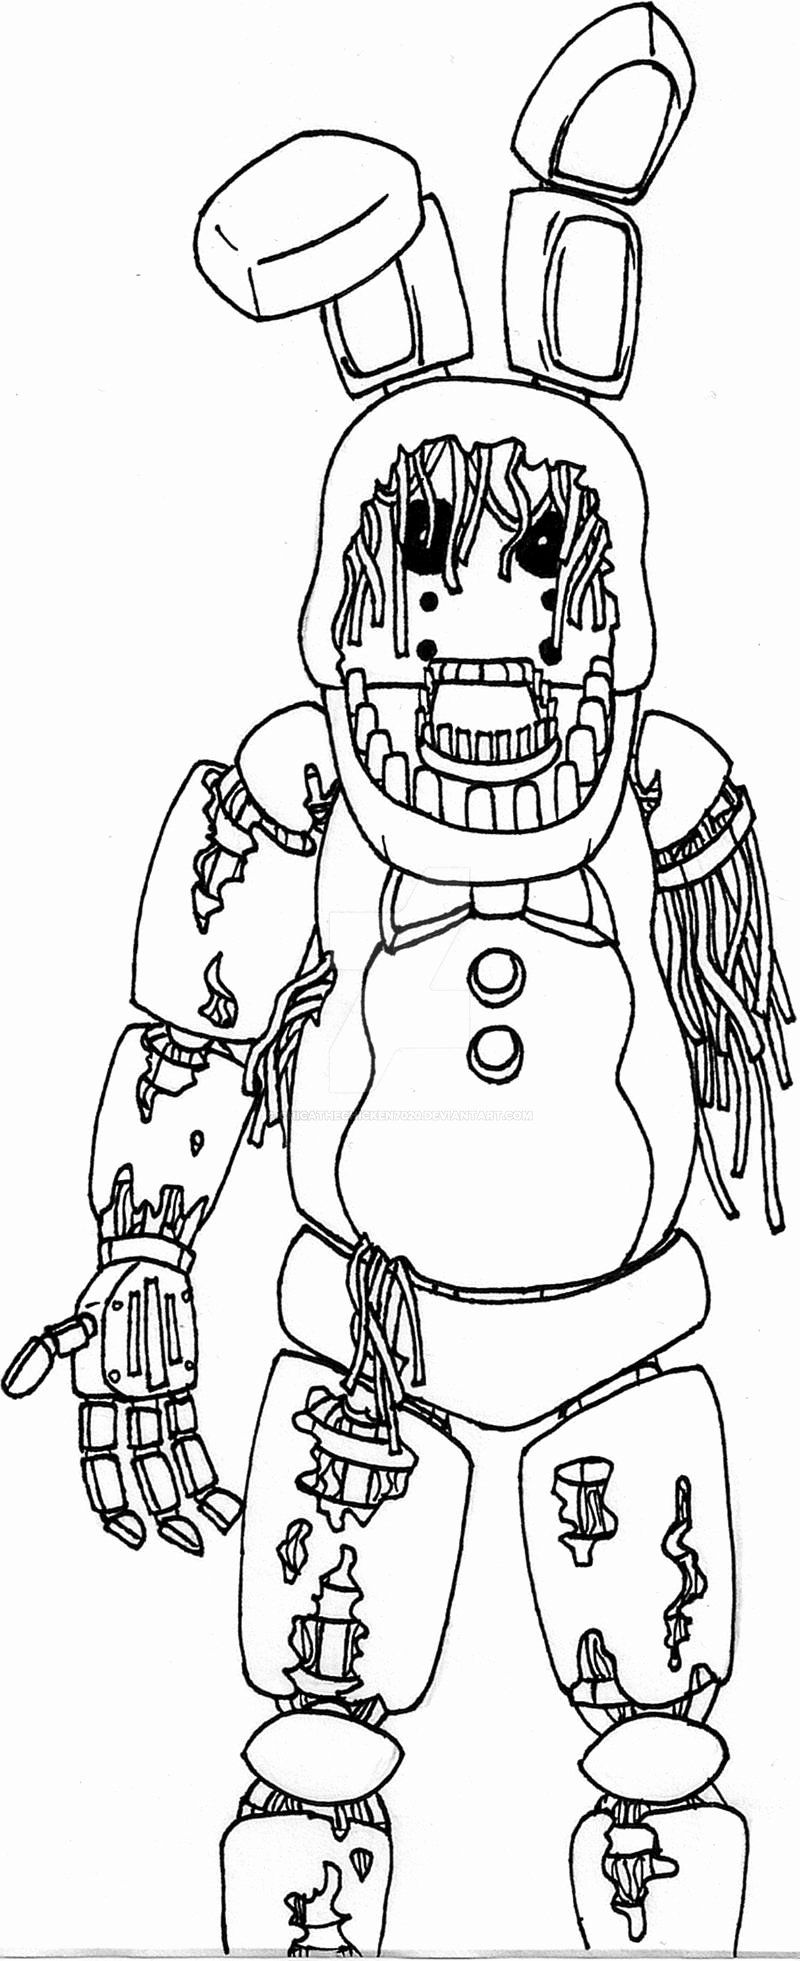 Fnaf Coloring Pages Withered Bonnie : coloring, pages, withered, bonnie, Spring, Bonnie, Coloring, Pages, Awesome, Withered, Chicathechicken7020, Deviantart, Pages,, Printable